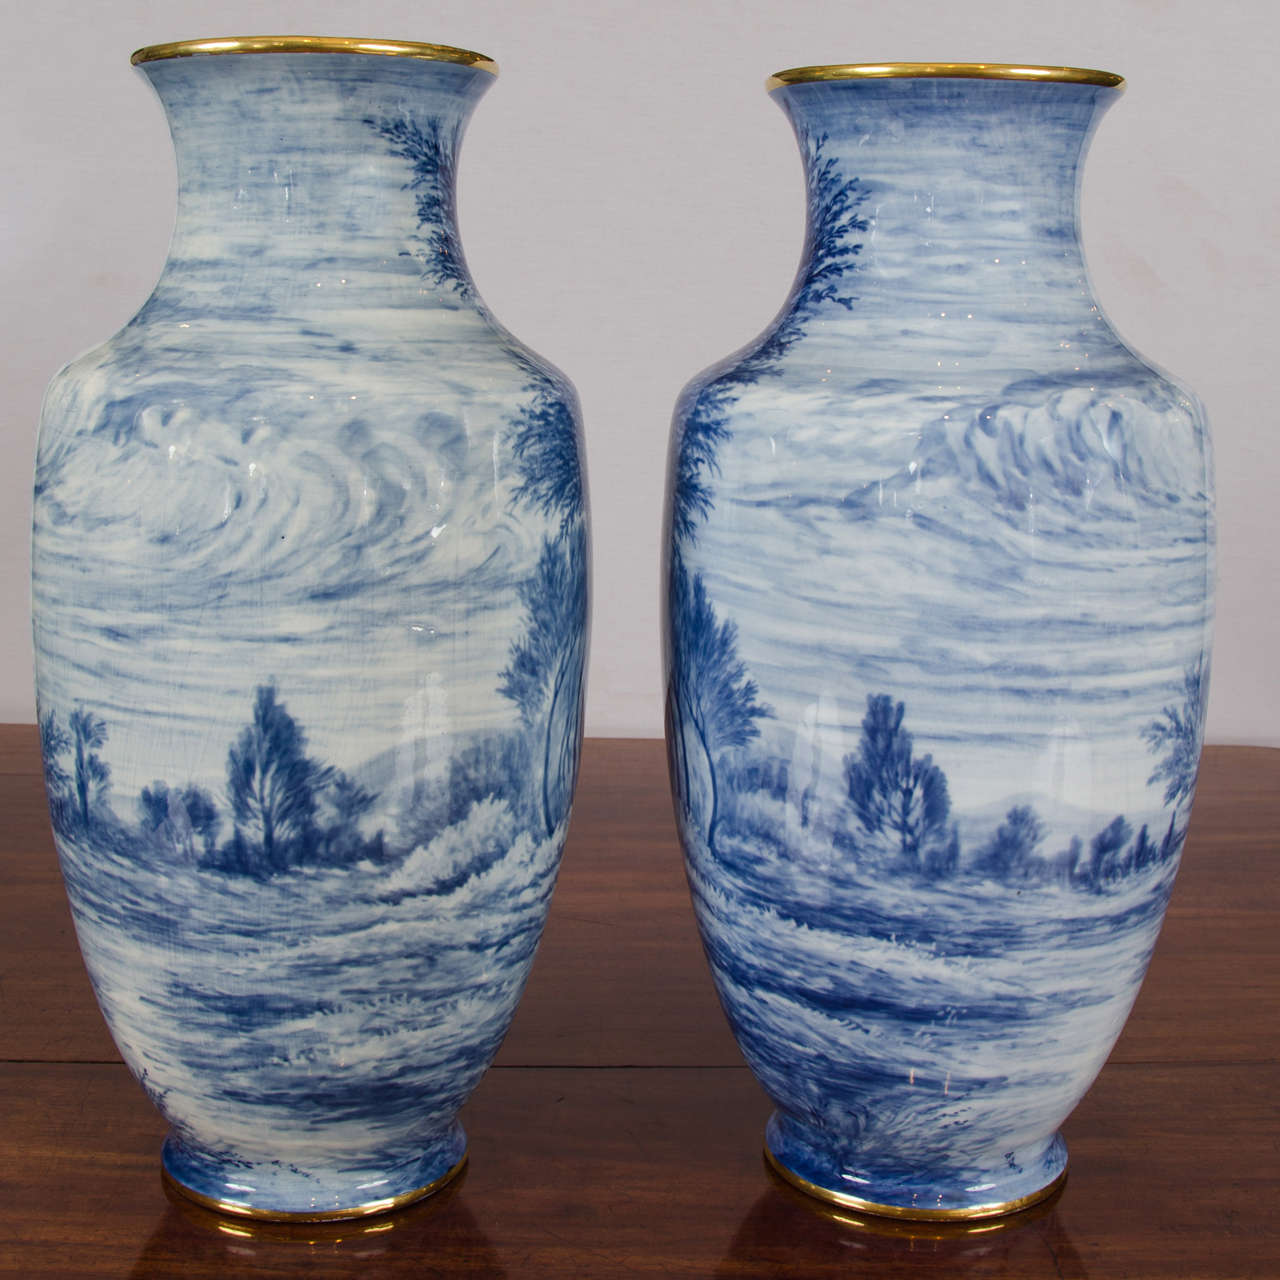 Pair of early 20th century french blue and white vases for sale at this stunning pair of tall slender shaped limoges vases has the most delightful and detailed hand reviewsmspy